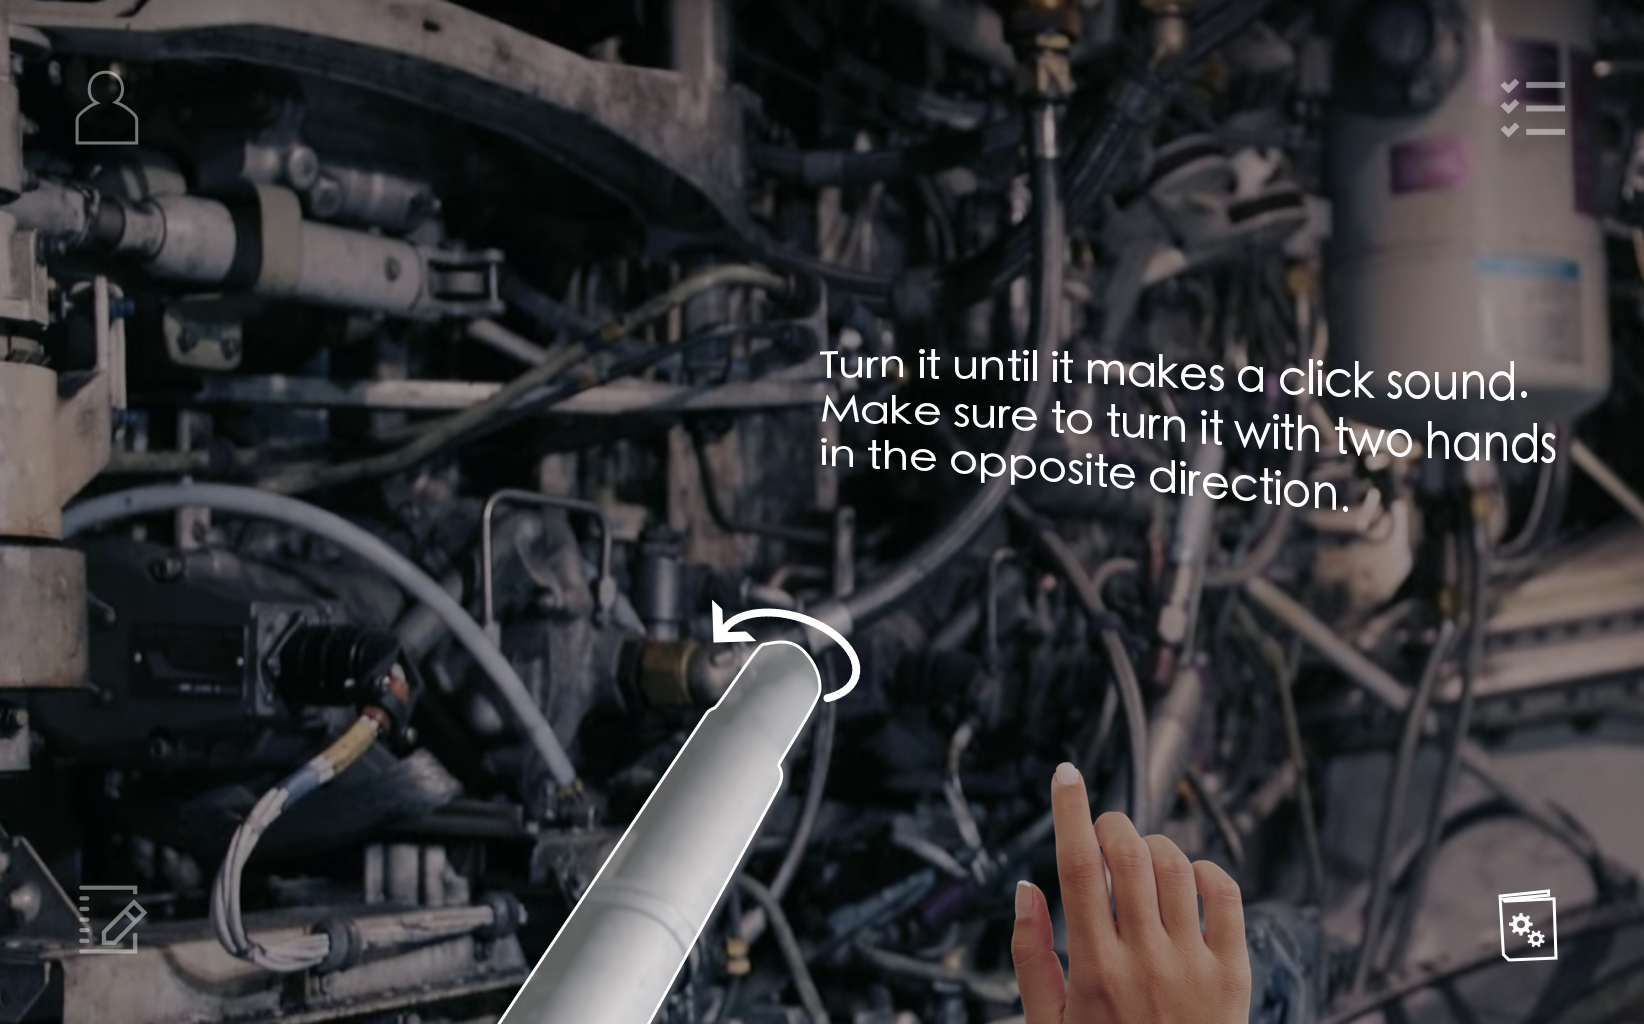 Repair Manual with Watson Assistant Copy.png